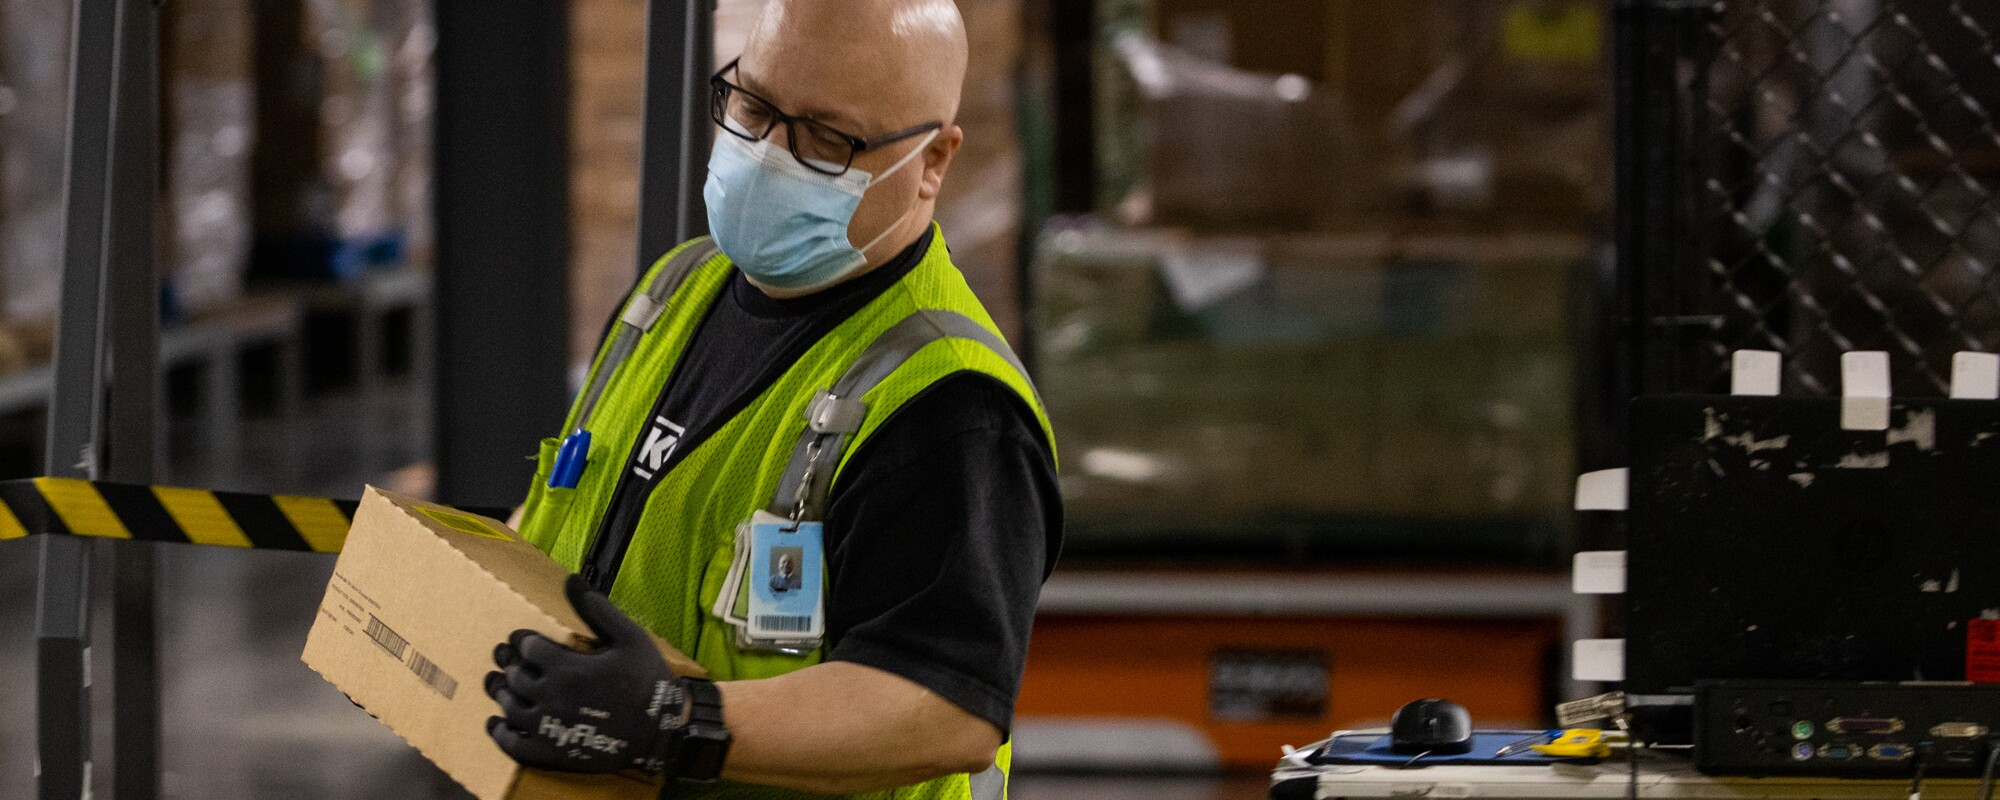 A man wearing gloves, a mask, and a safety vest carries a small box.